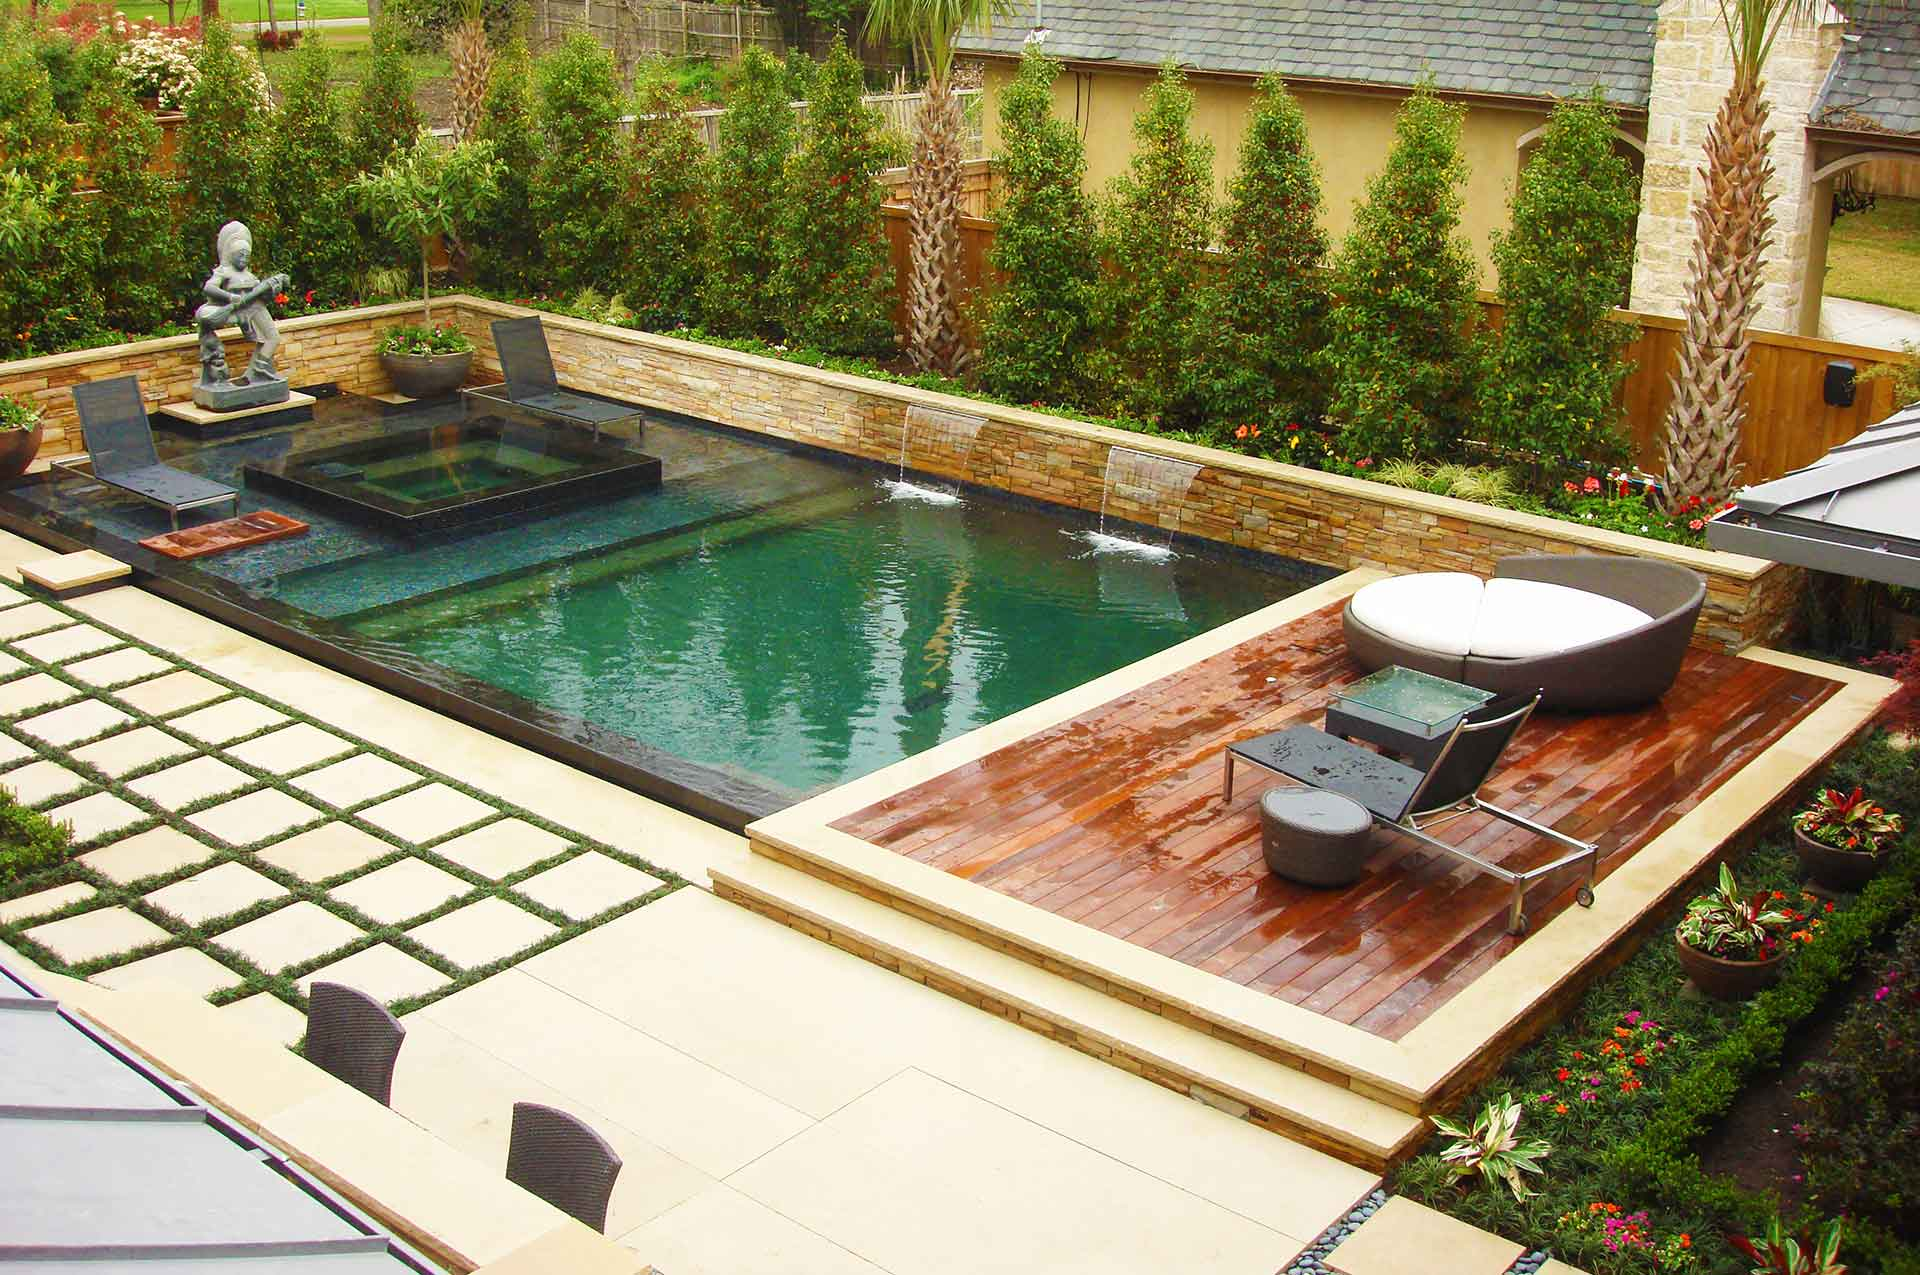 Southern Land Design Landscaped Swimming Pool Slide 1920 x 1275